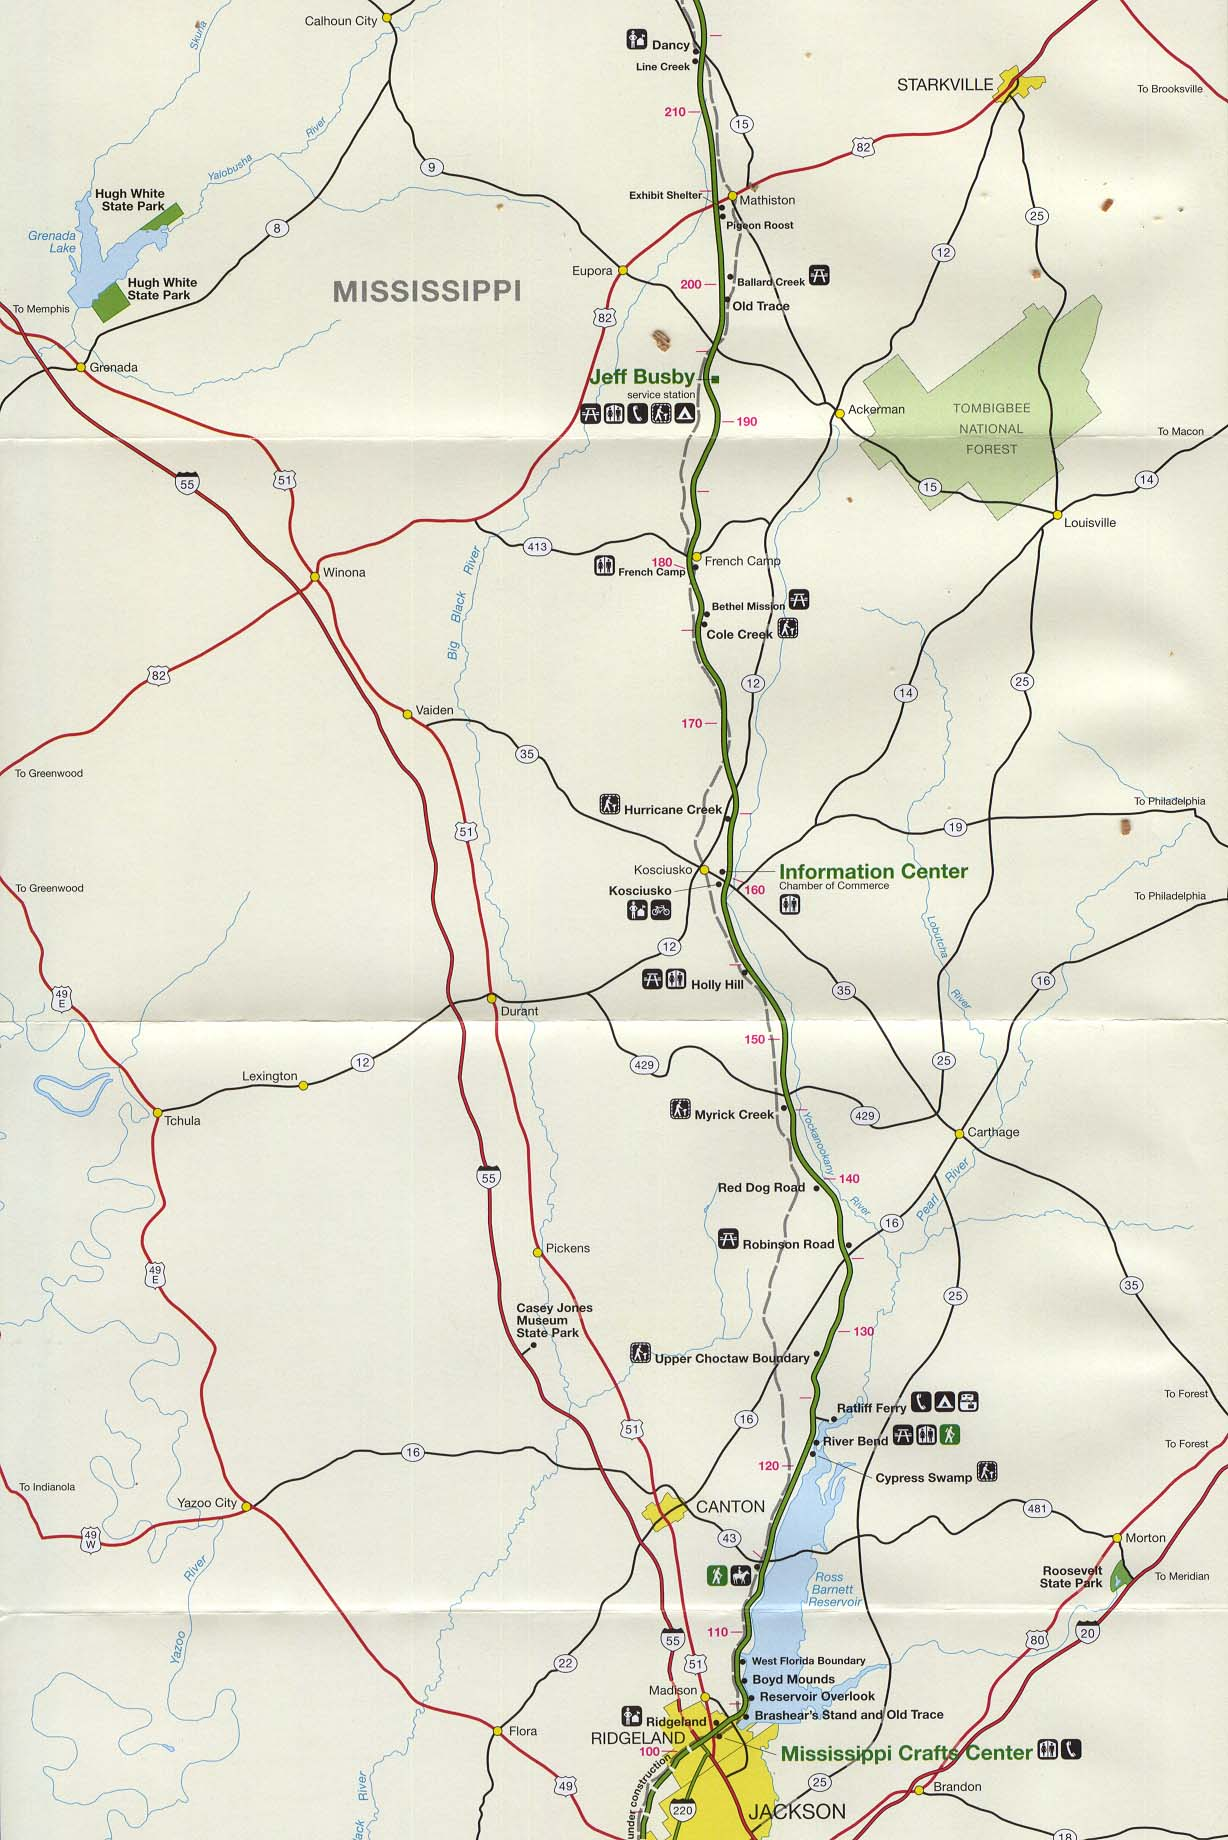 Maps of United States National Parks, Monuments and Historic Sites Natchez Trace Parkway National Scenic Trail [Mississippi, Alabama, and Tennessee] (Jackson to Dancy, Mississippi) 1997 (323K)